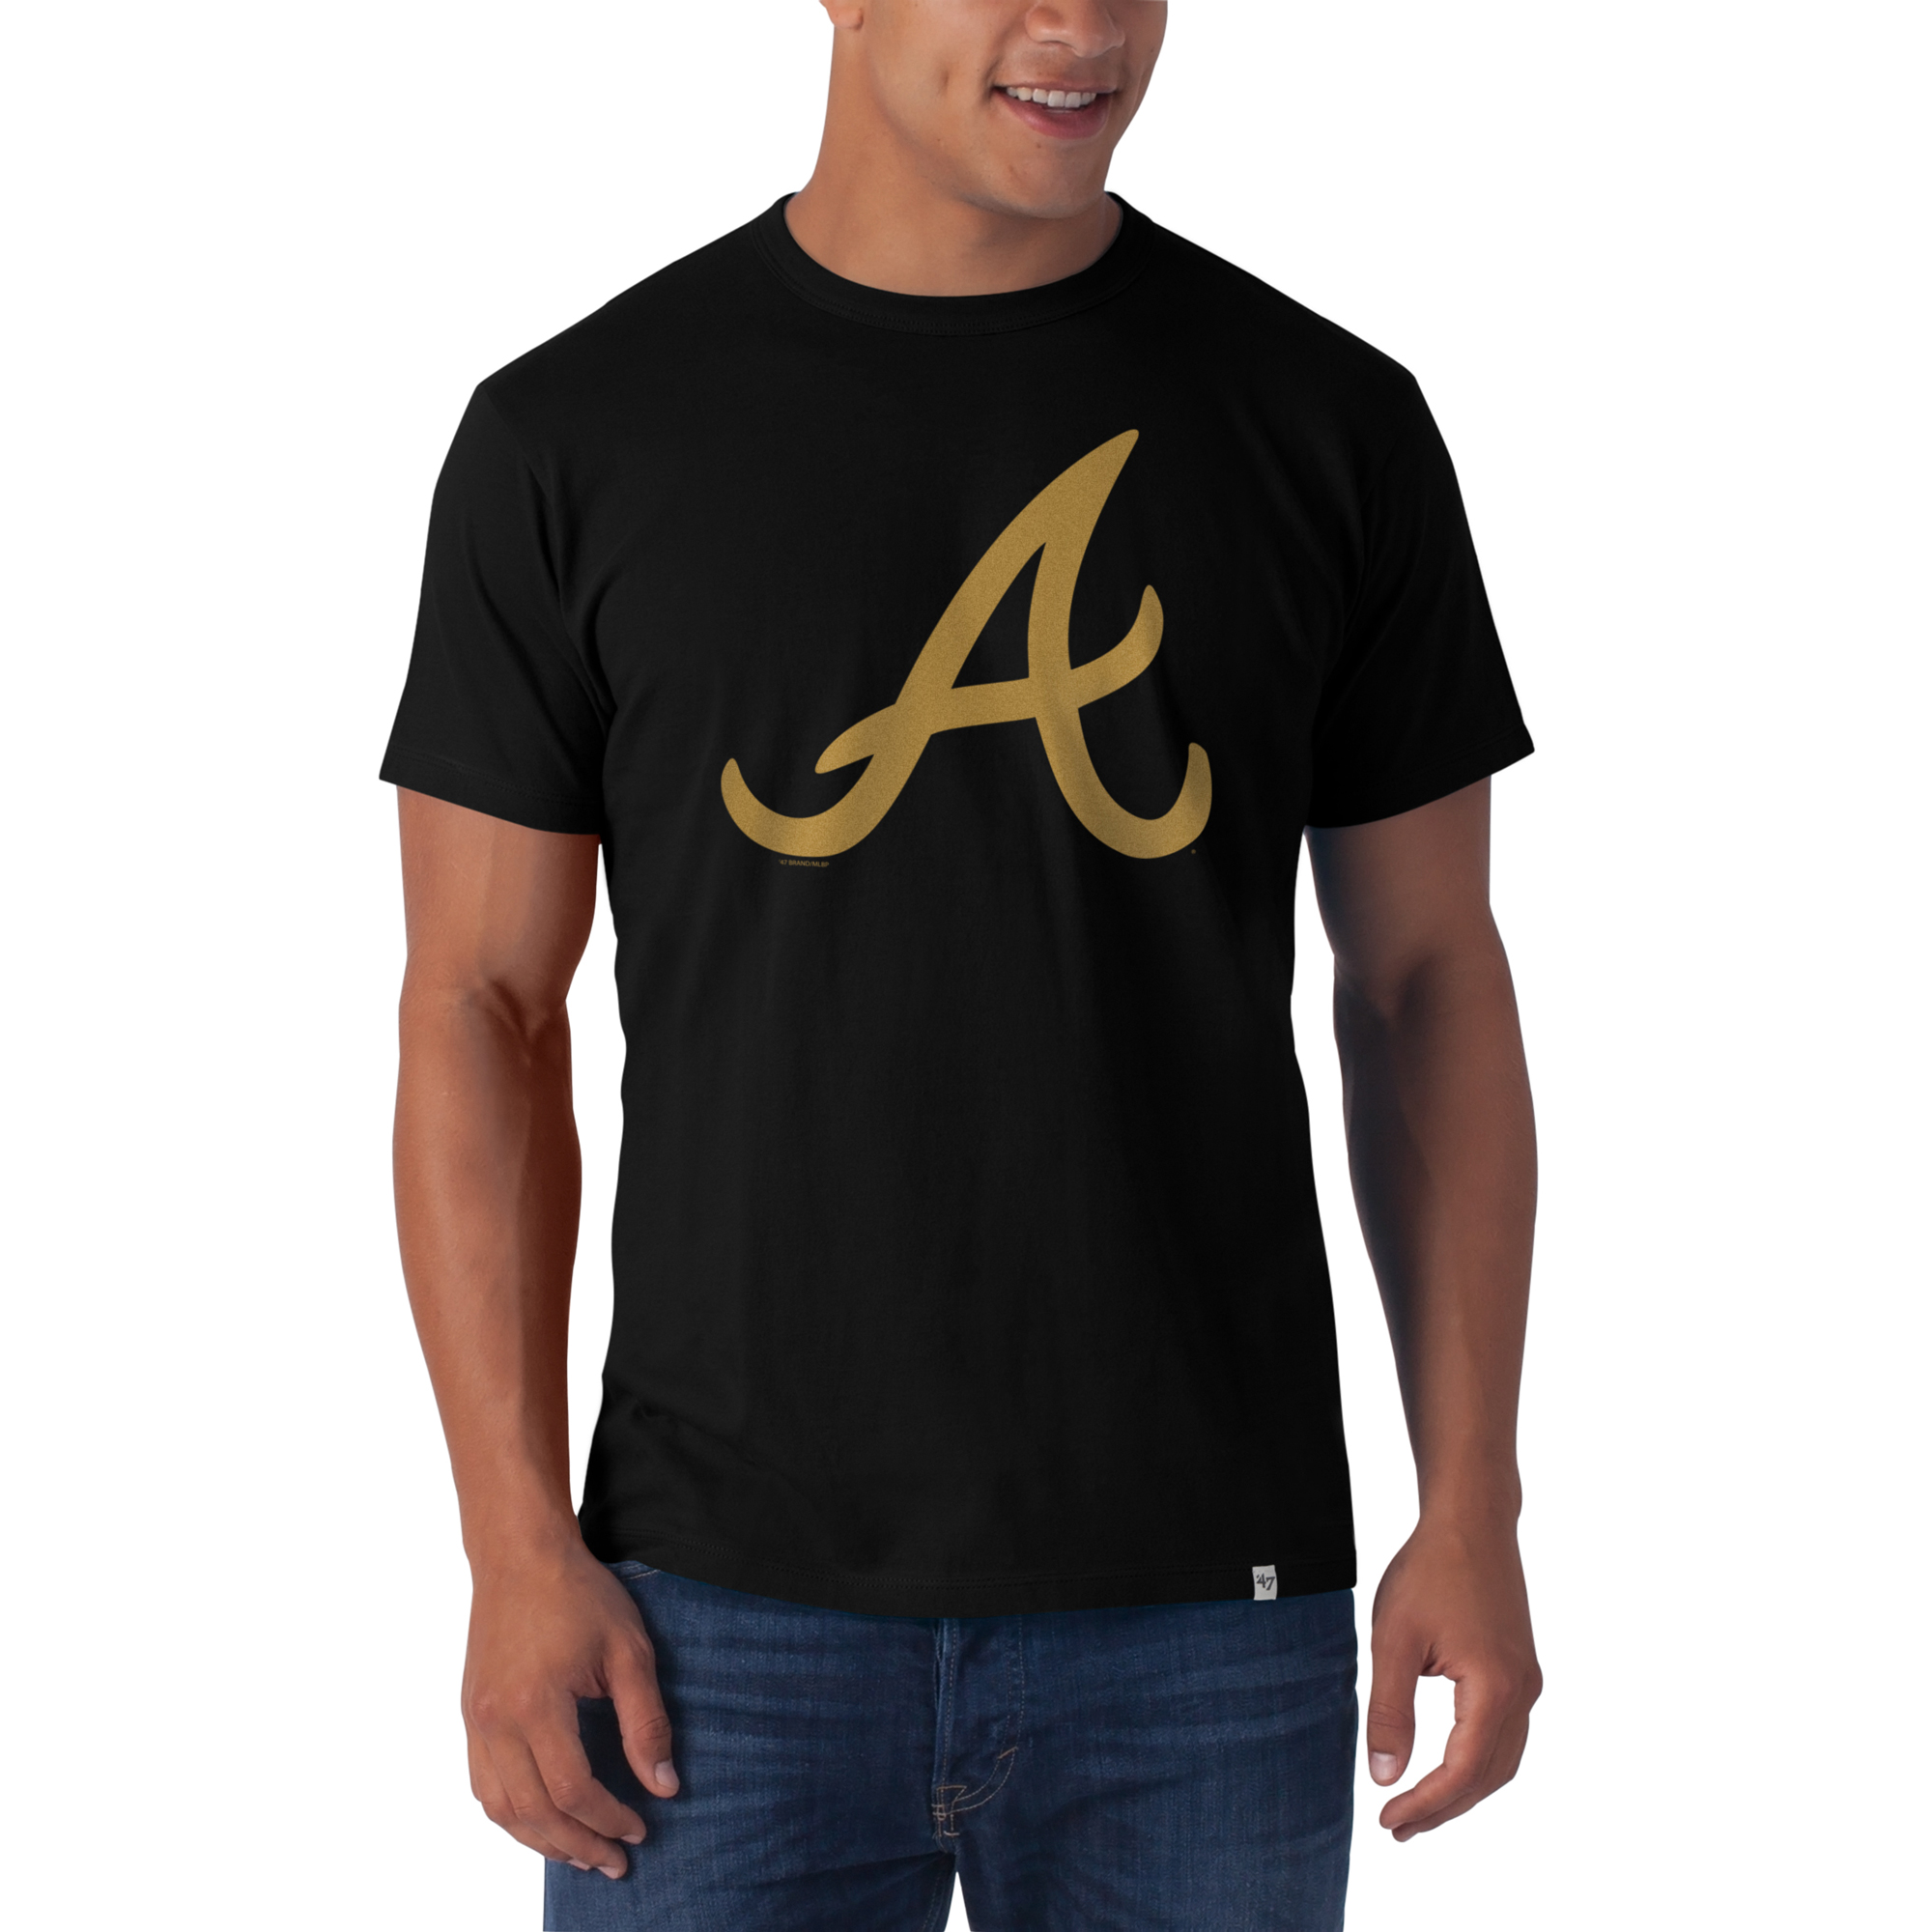 Atlanta Braves '47 Abe T-Shirt - Black